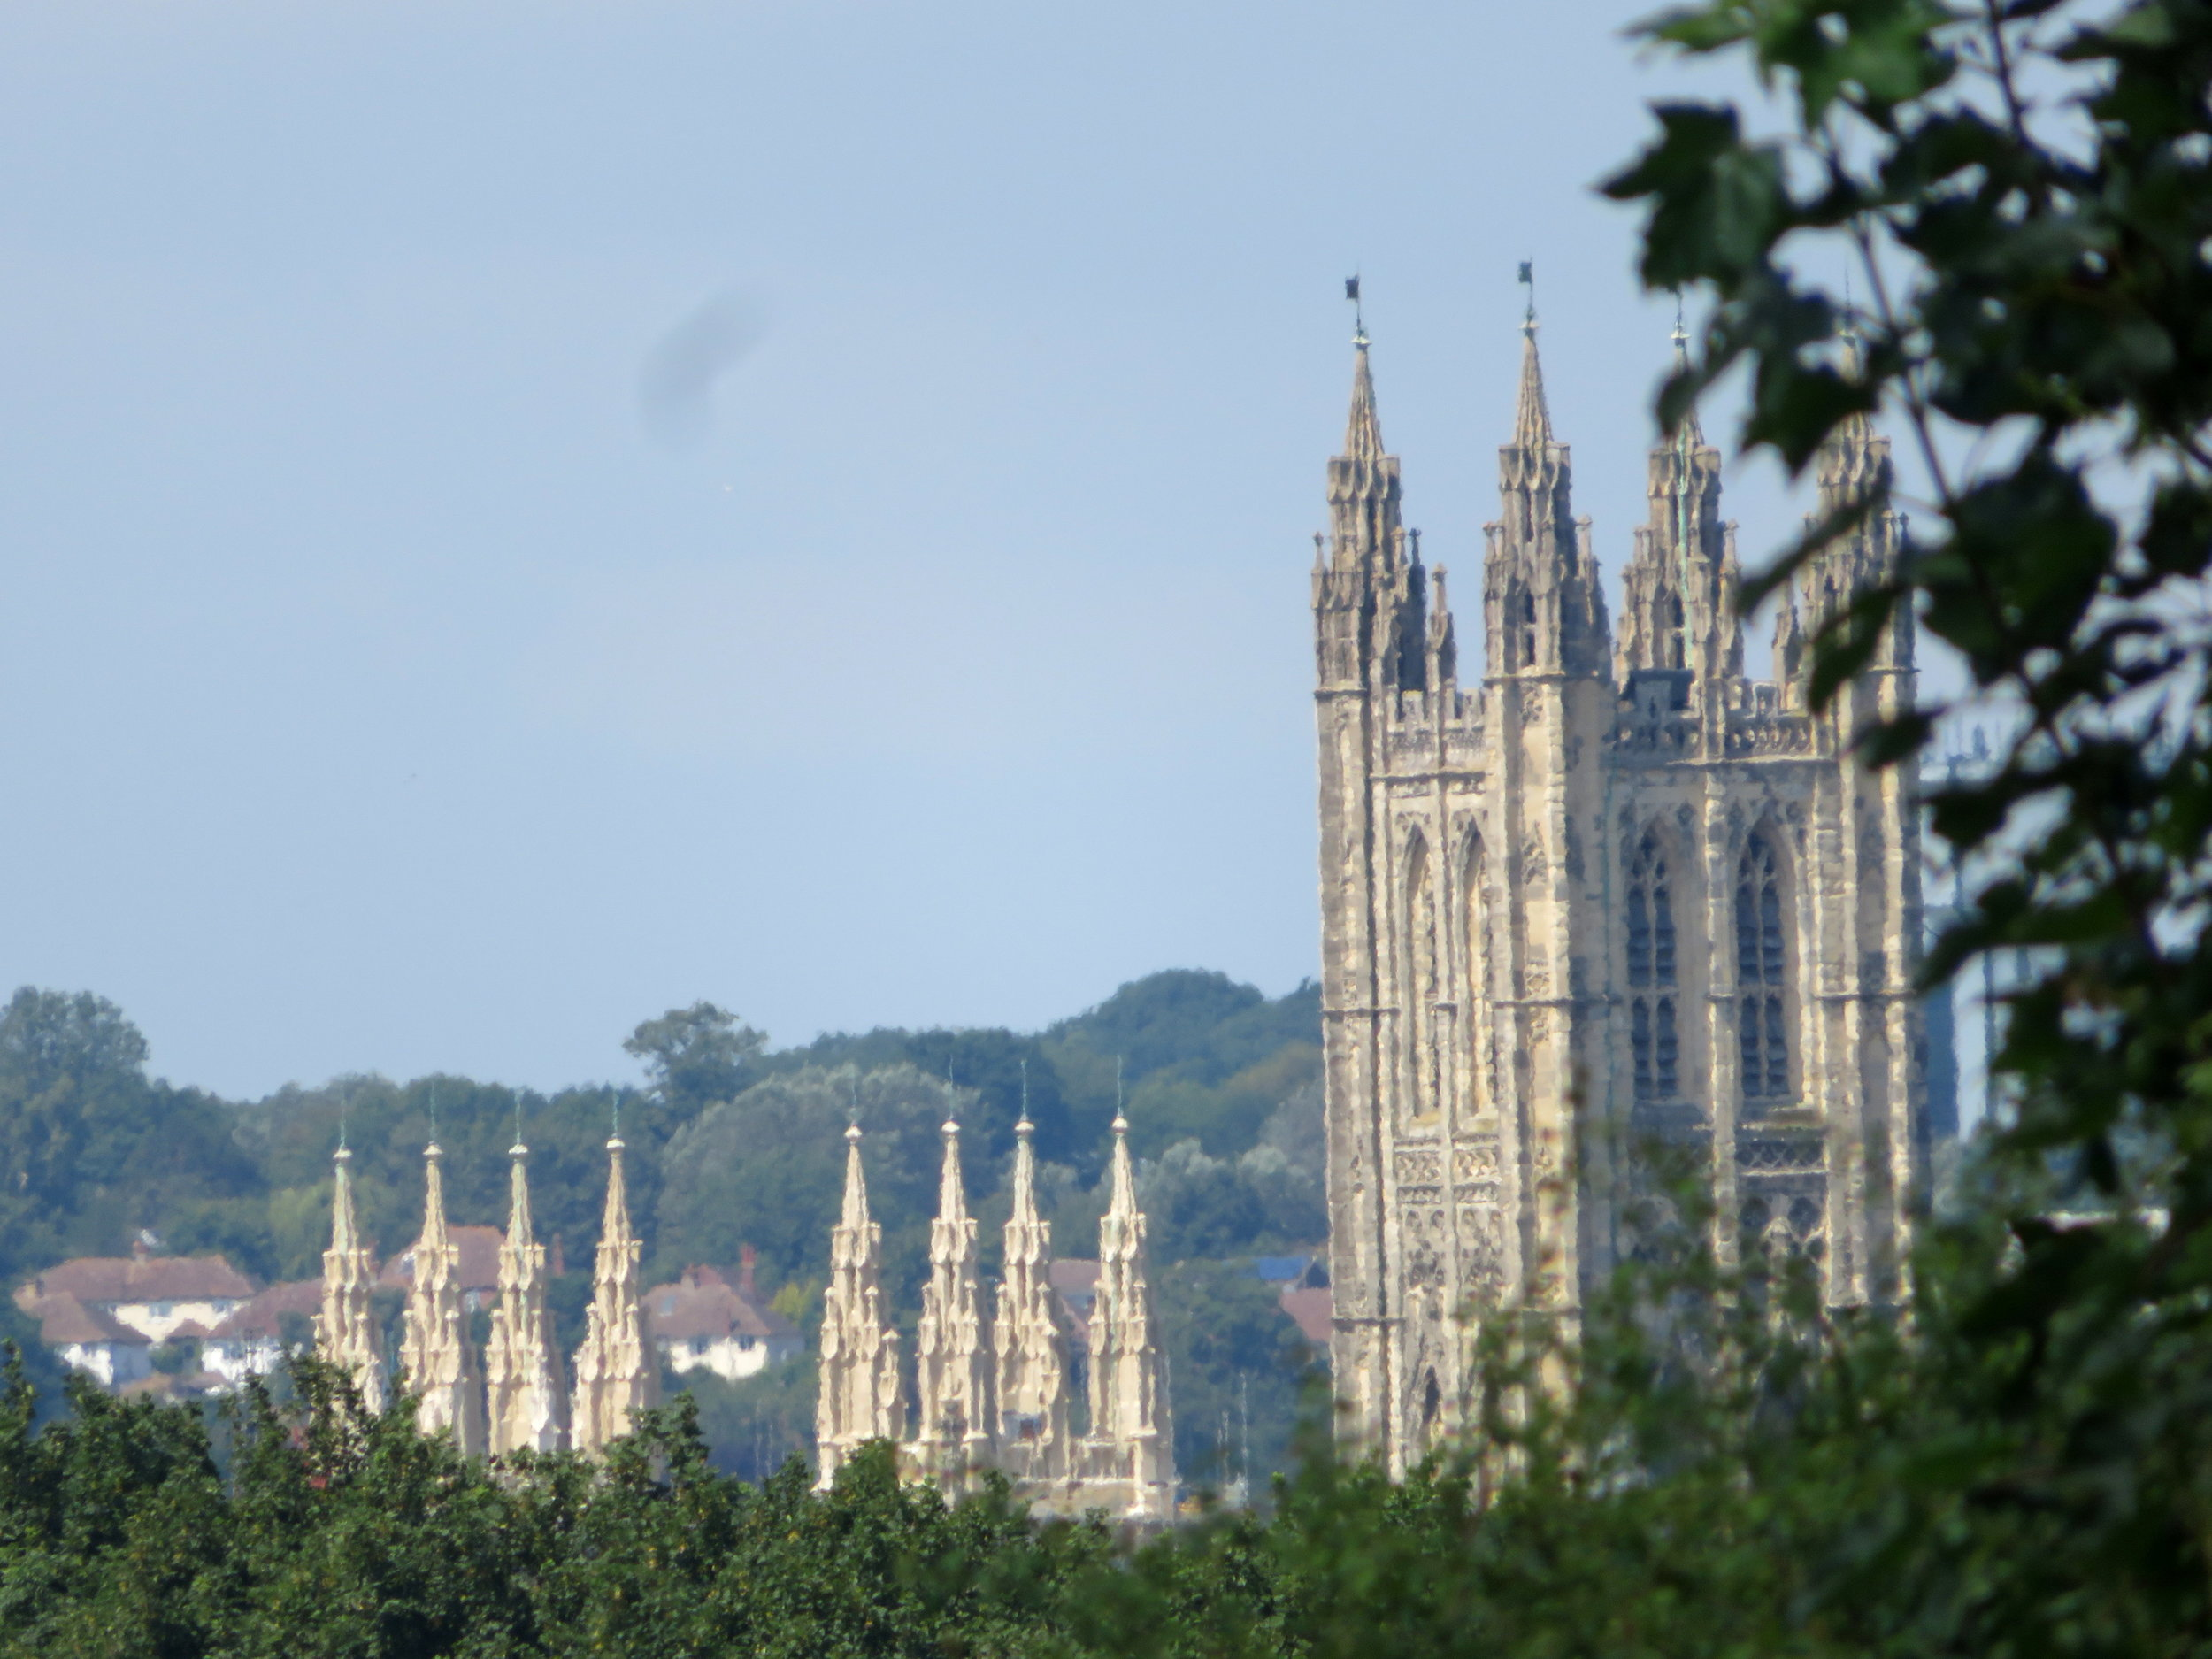 As we neared Canterbury and turned onto Pilgrims Road, the spires of Canterbury Cathedral peeked through the trees. What a sight! It took our breaths away.